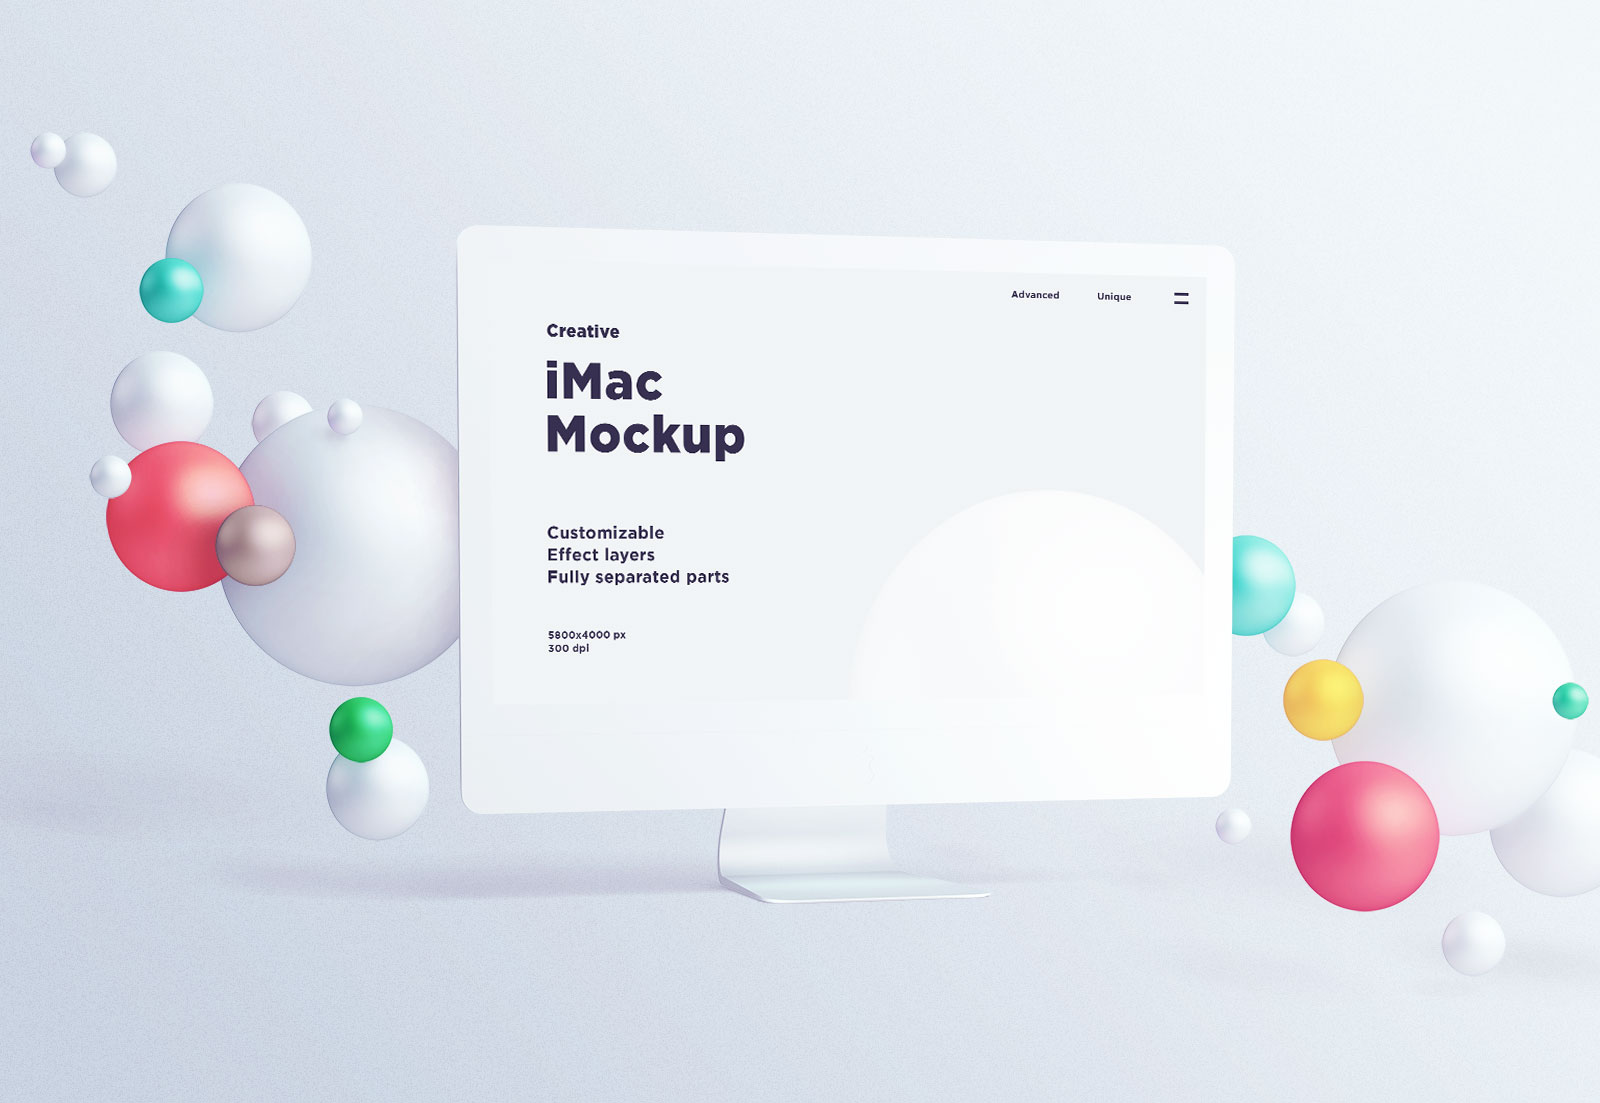 Free-Fully-Customizable-iMac-Mockup-PSD-2